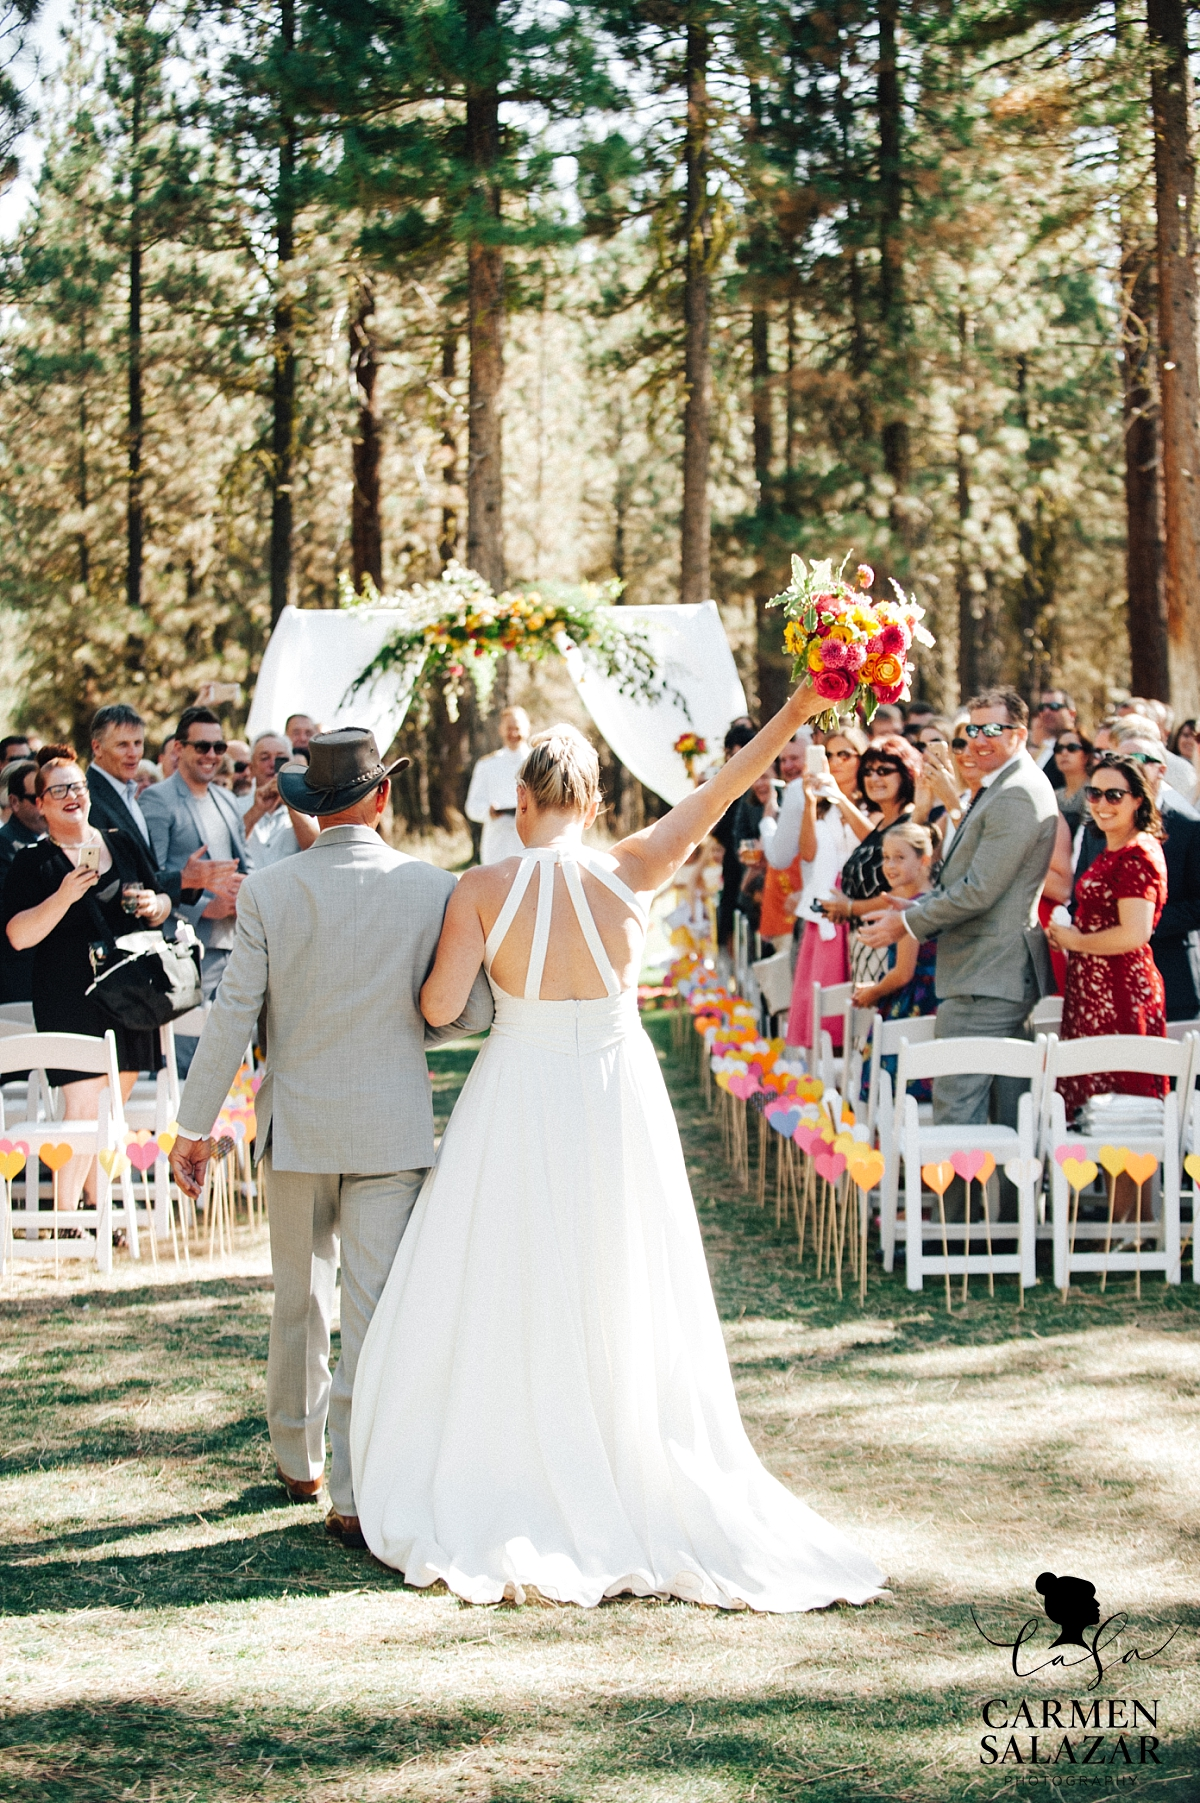 Excited bride walking down the aisle at Chalet View Lodge wedding - Carmen Salazar